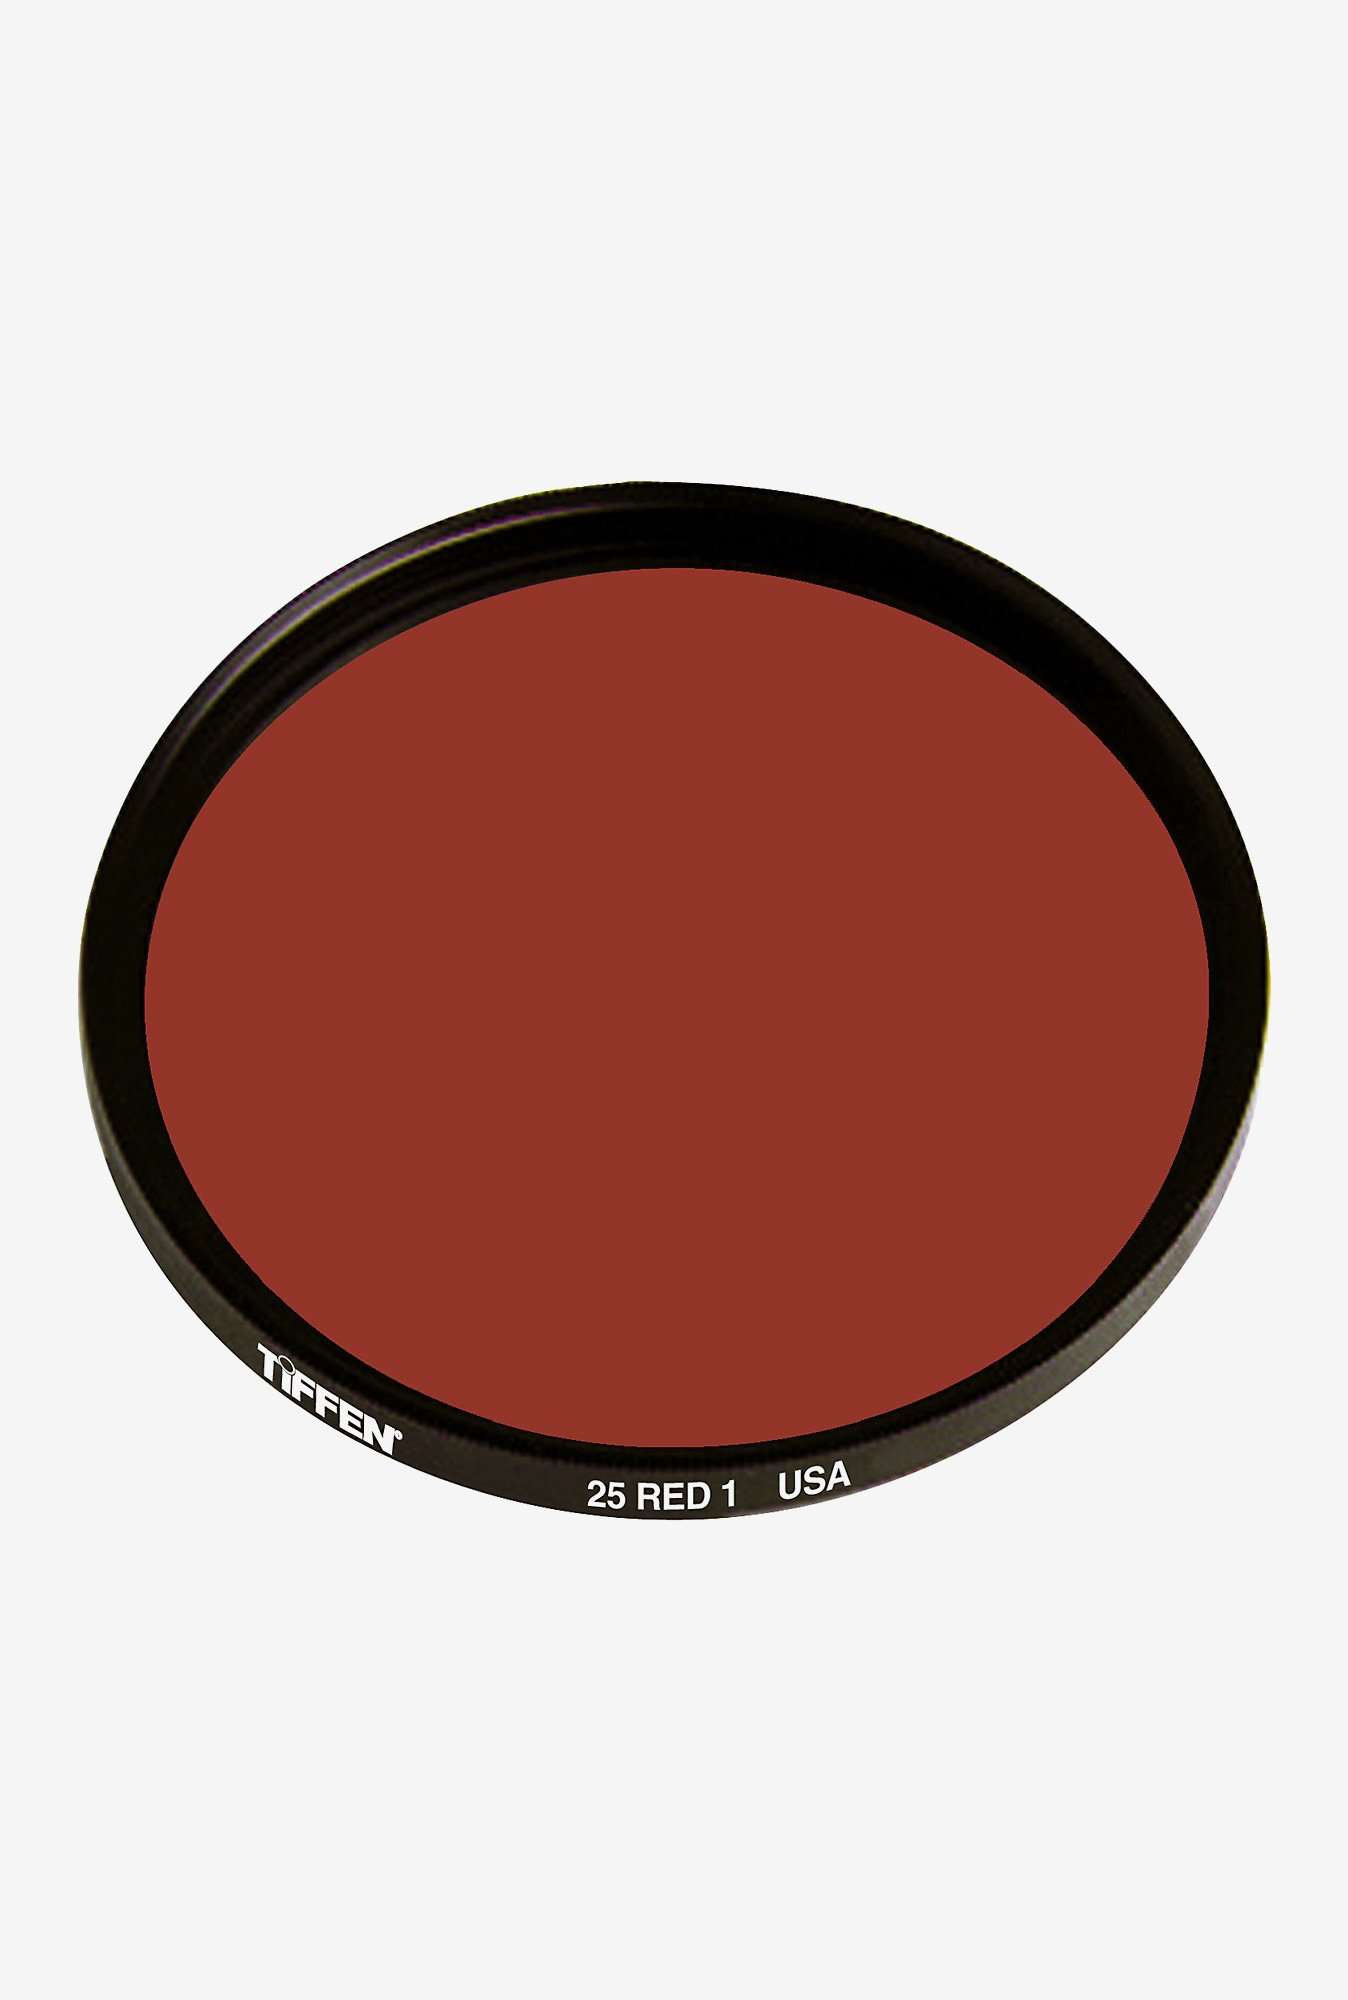 Tiffen 52mm Filter (Red 25)